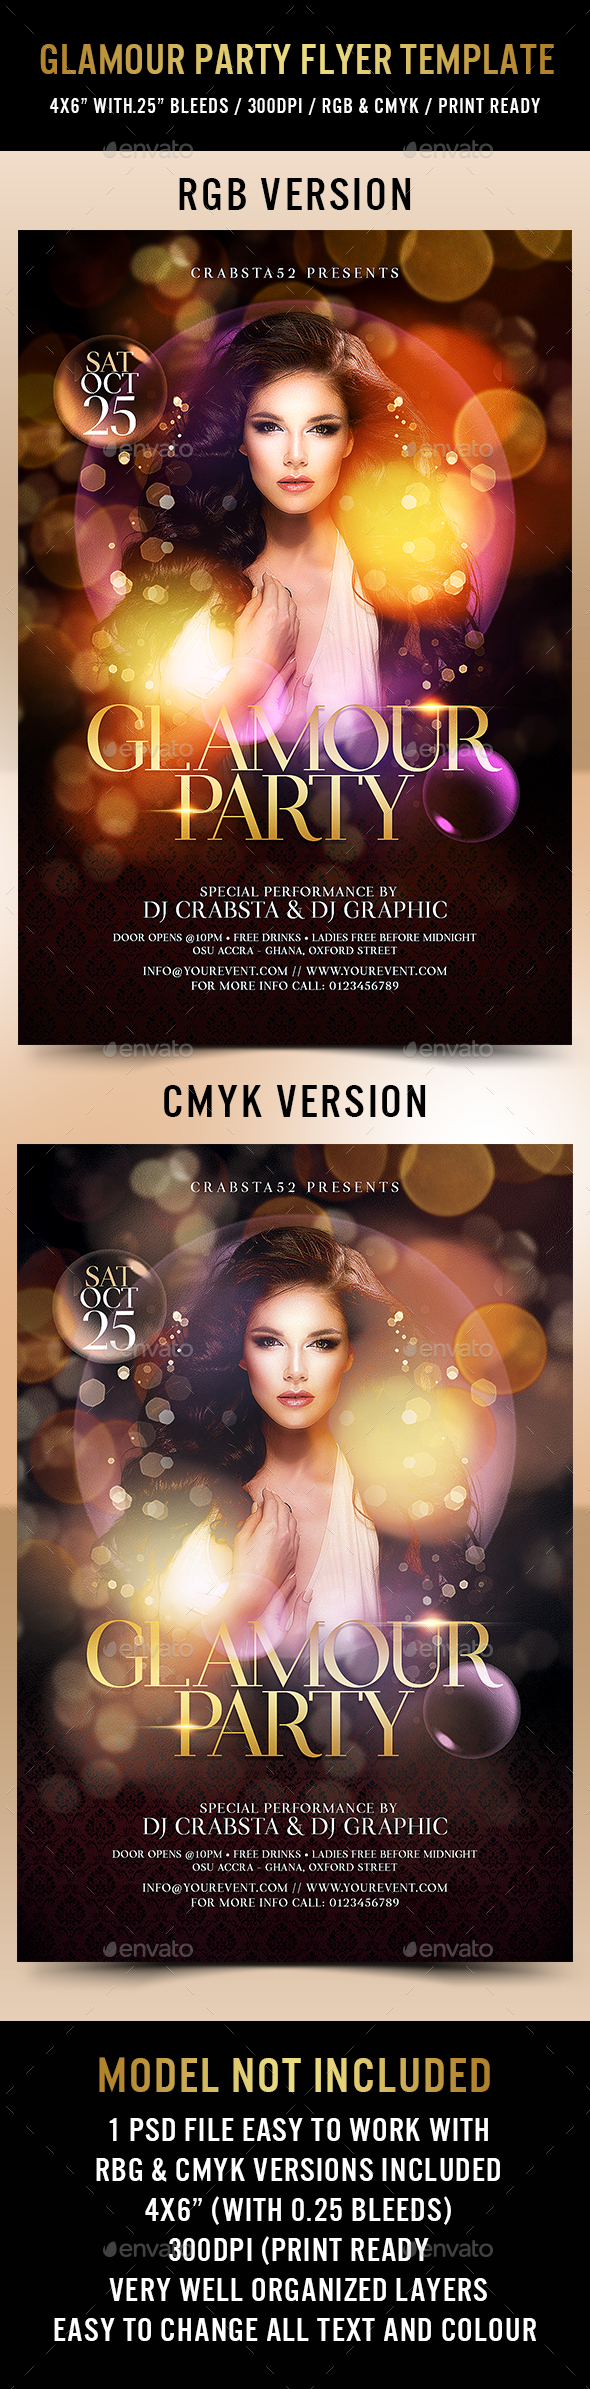 Glamour Party Flyer Template - Flyers Print Templates